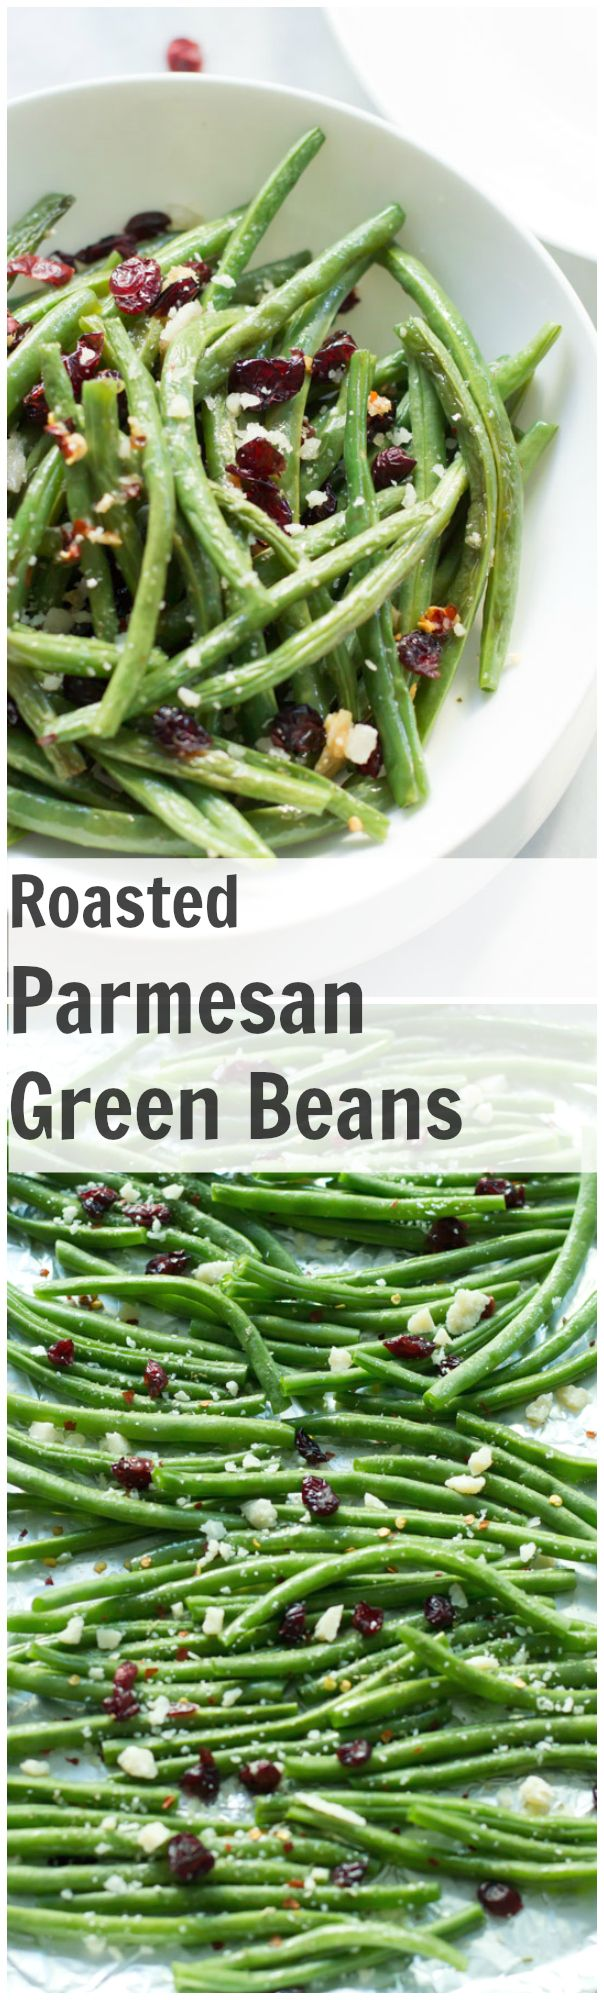 Roasted Parmesan Green Beans | Recipe | Dried cranberries ...